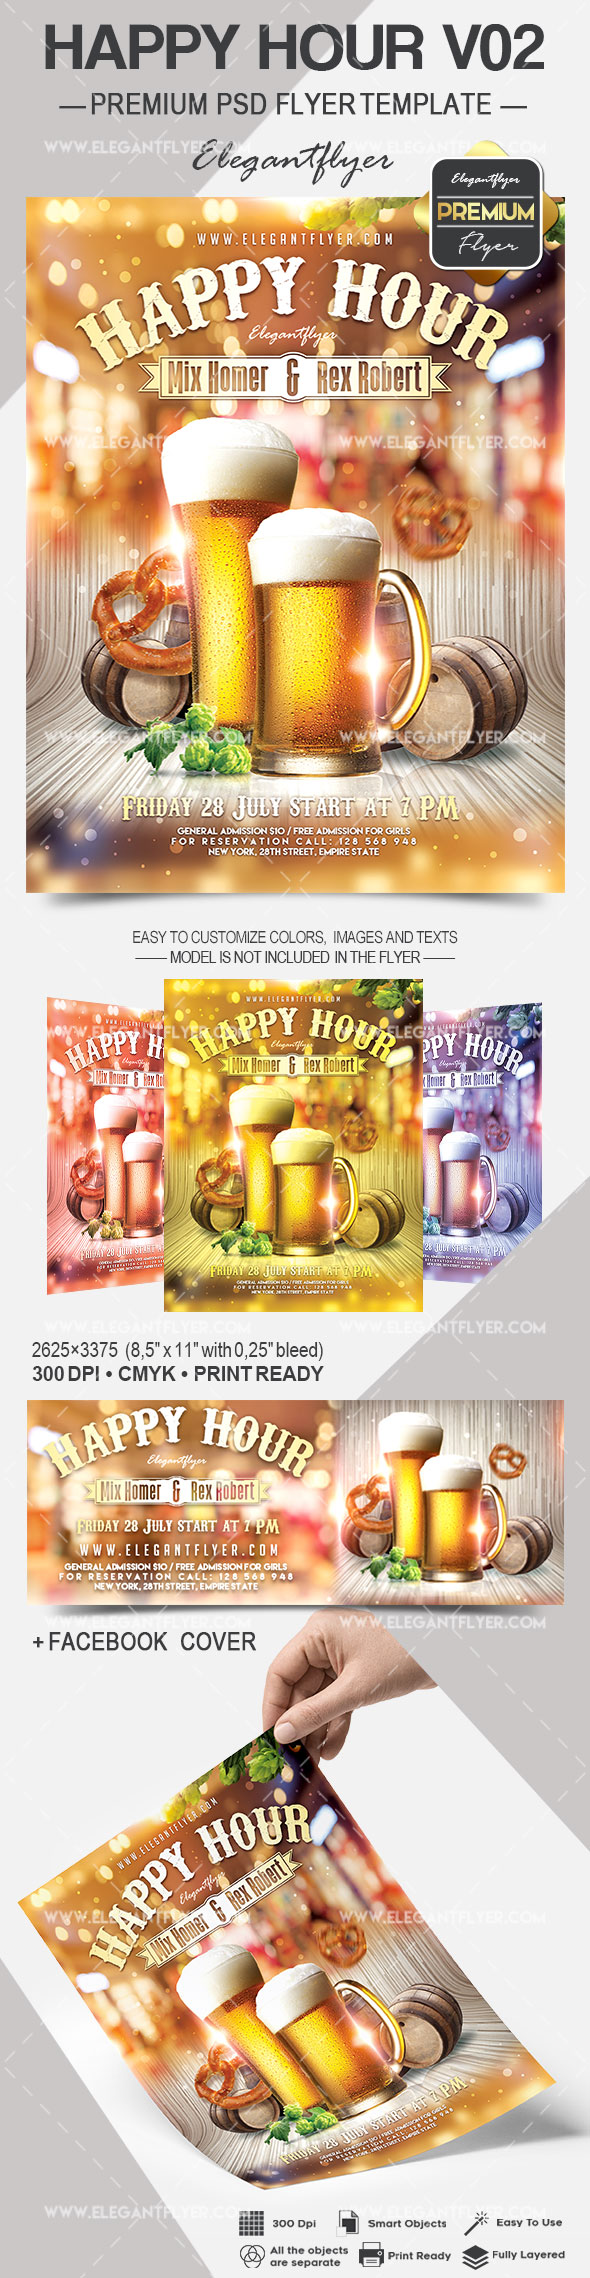 Happy Hour V02 – Flyer PSD Template